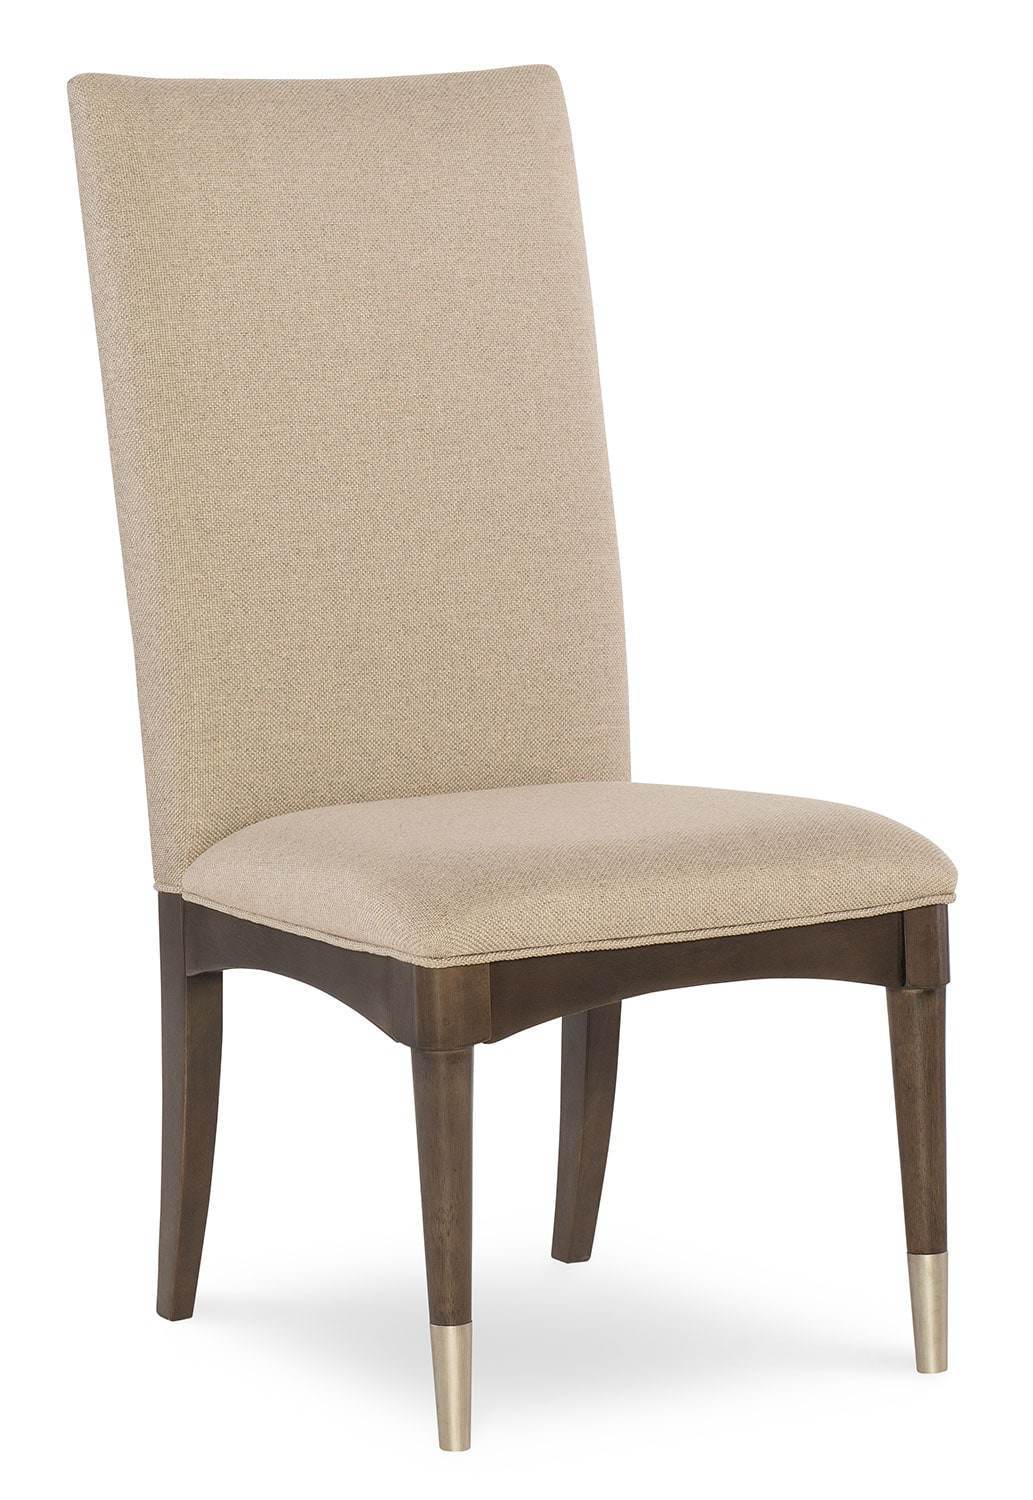 Dining Room Furniture - Rachael Ray Soho Upholstered Back Side Chair - Ash Brown